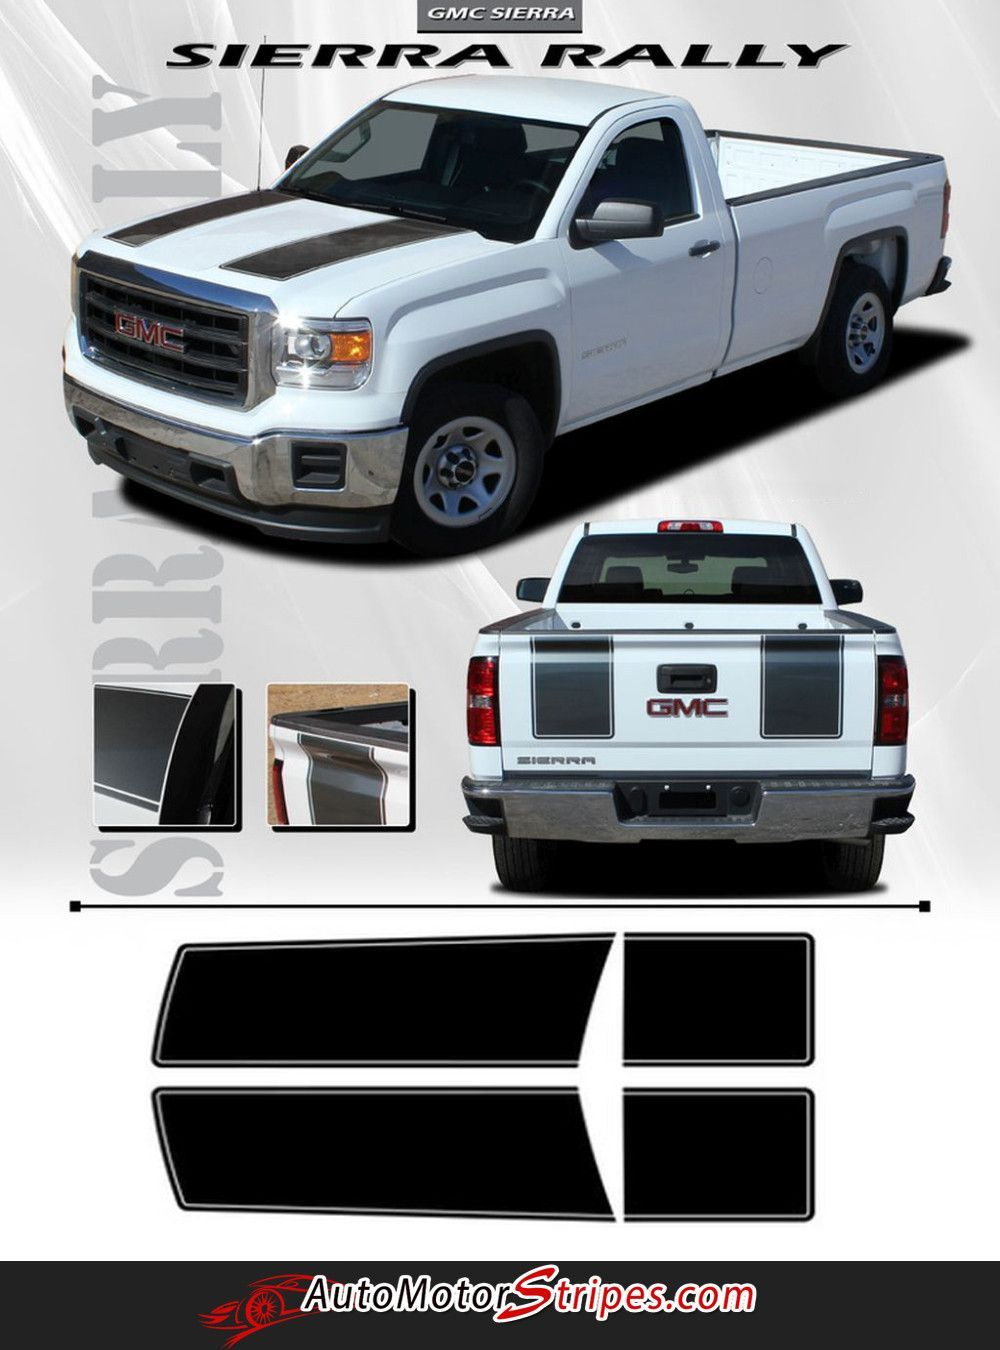 small resolution of 2014 2016 gmc sierra rally oe factory style edition truck hood tailgate racing vinyl graphics stripes kit